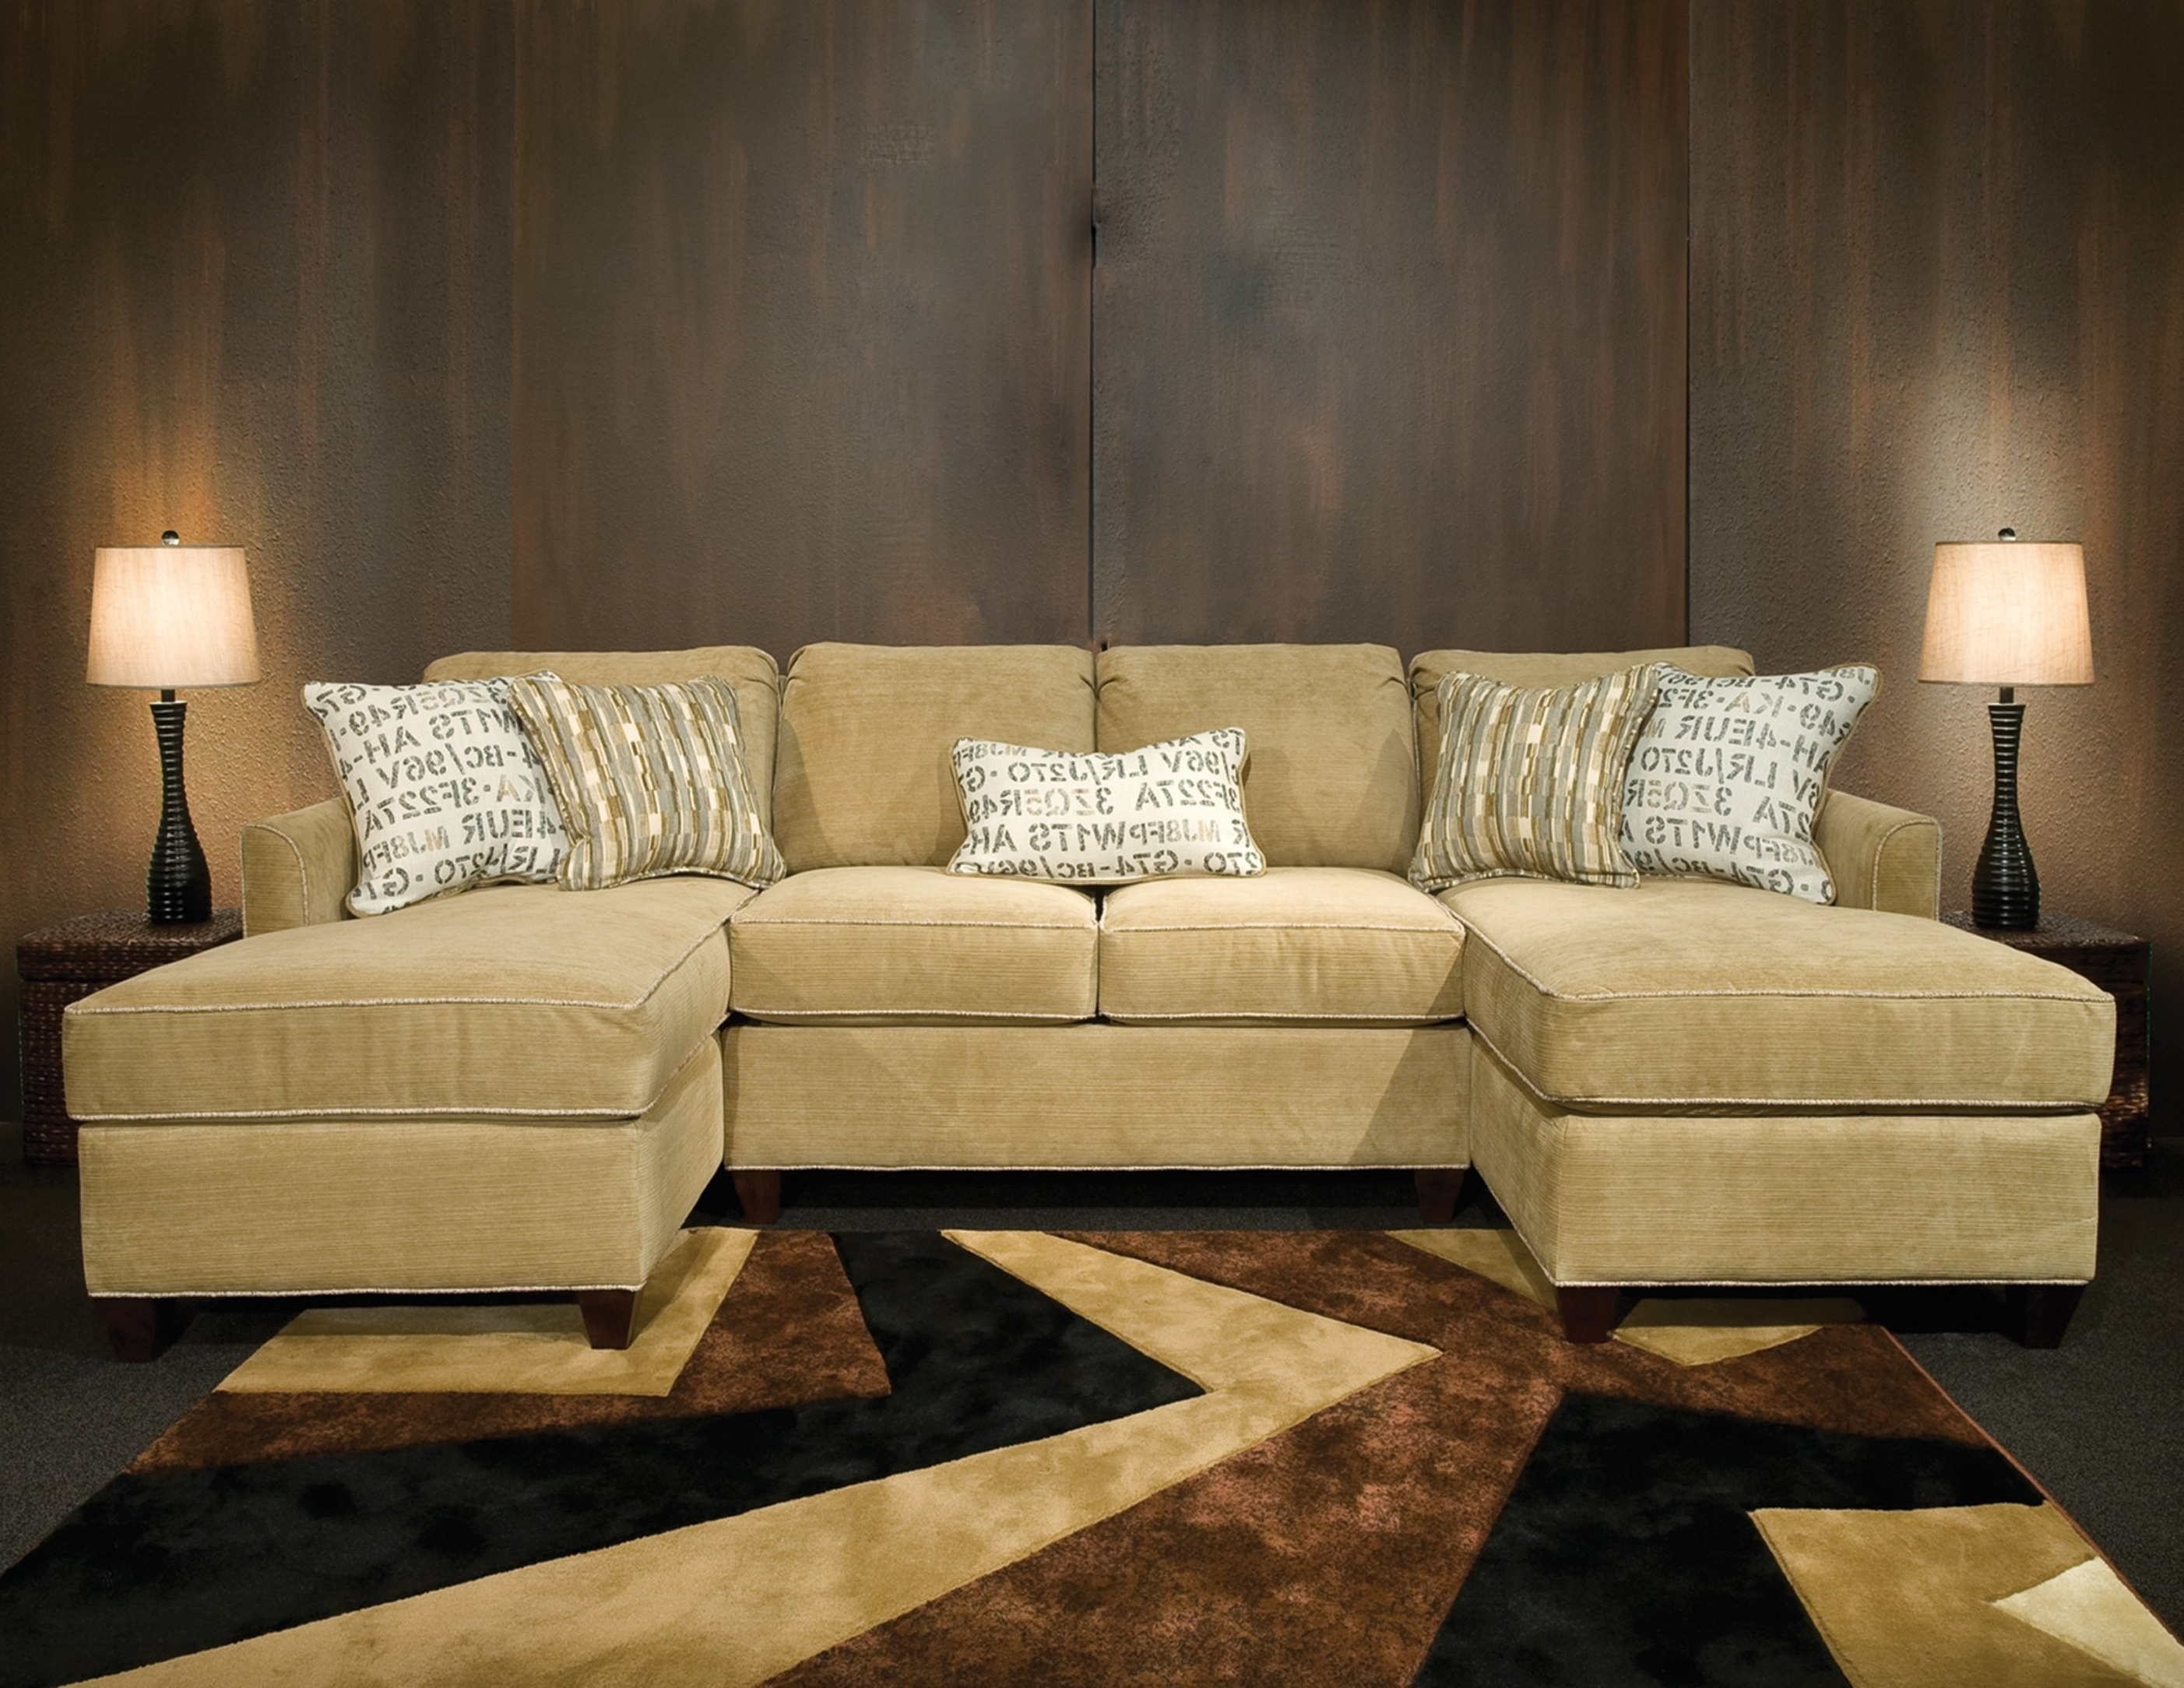 Well Liked Double Chaise Lounge Sofa 15 In Sofas And Couches Ideas Regarding For Double Chaises (View 15 of 15)